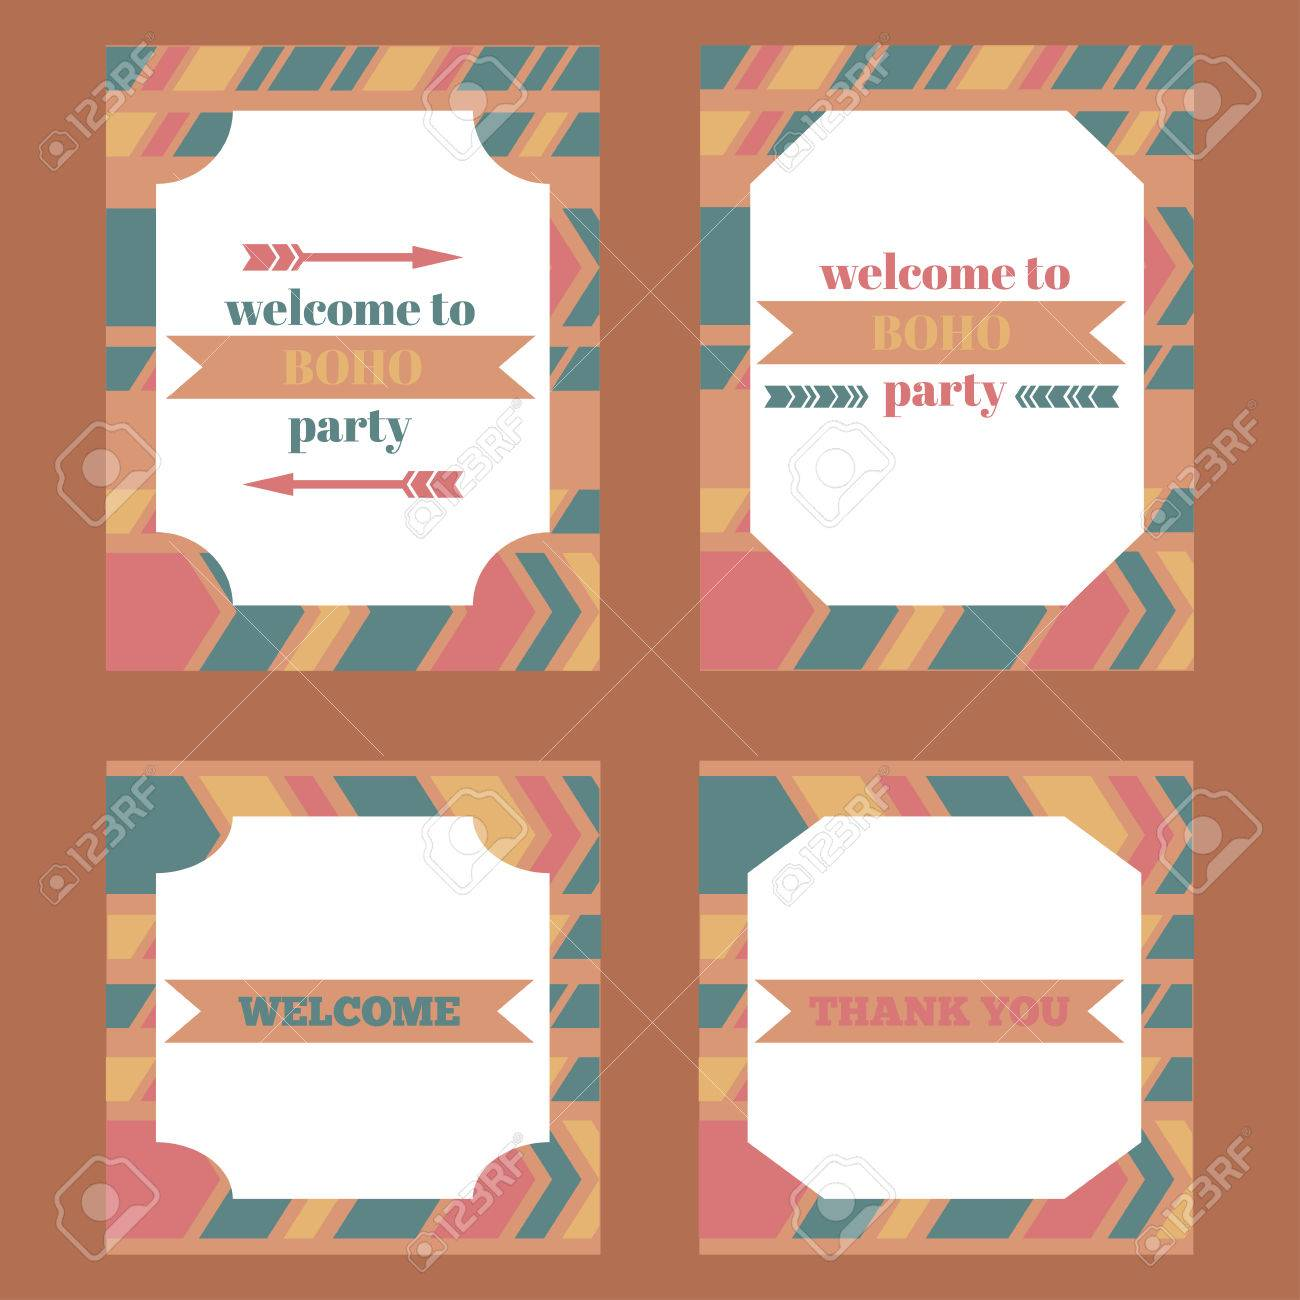 photo about Printable Elements titled Printable tribal established of typical boho celebration products. Templates,..